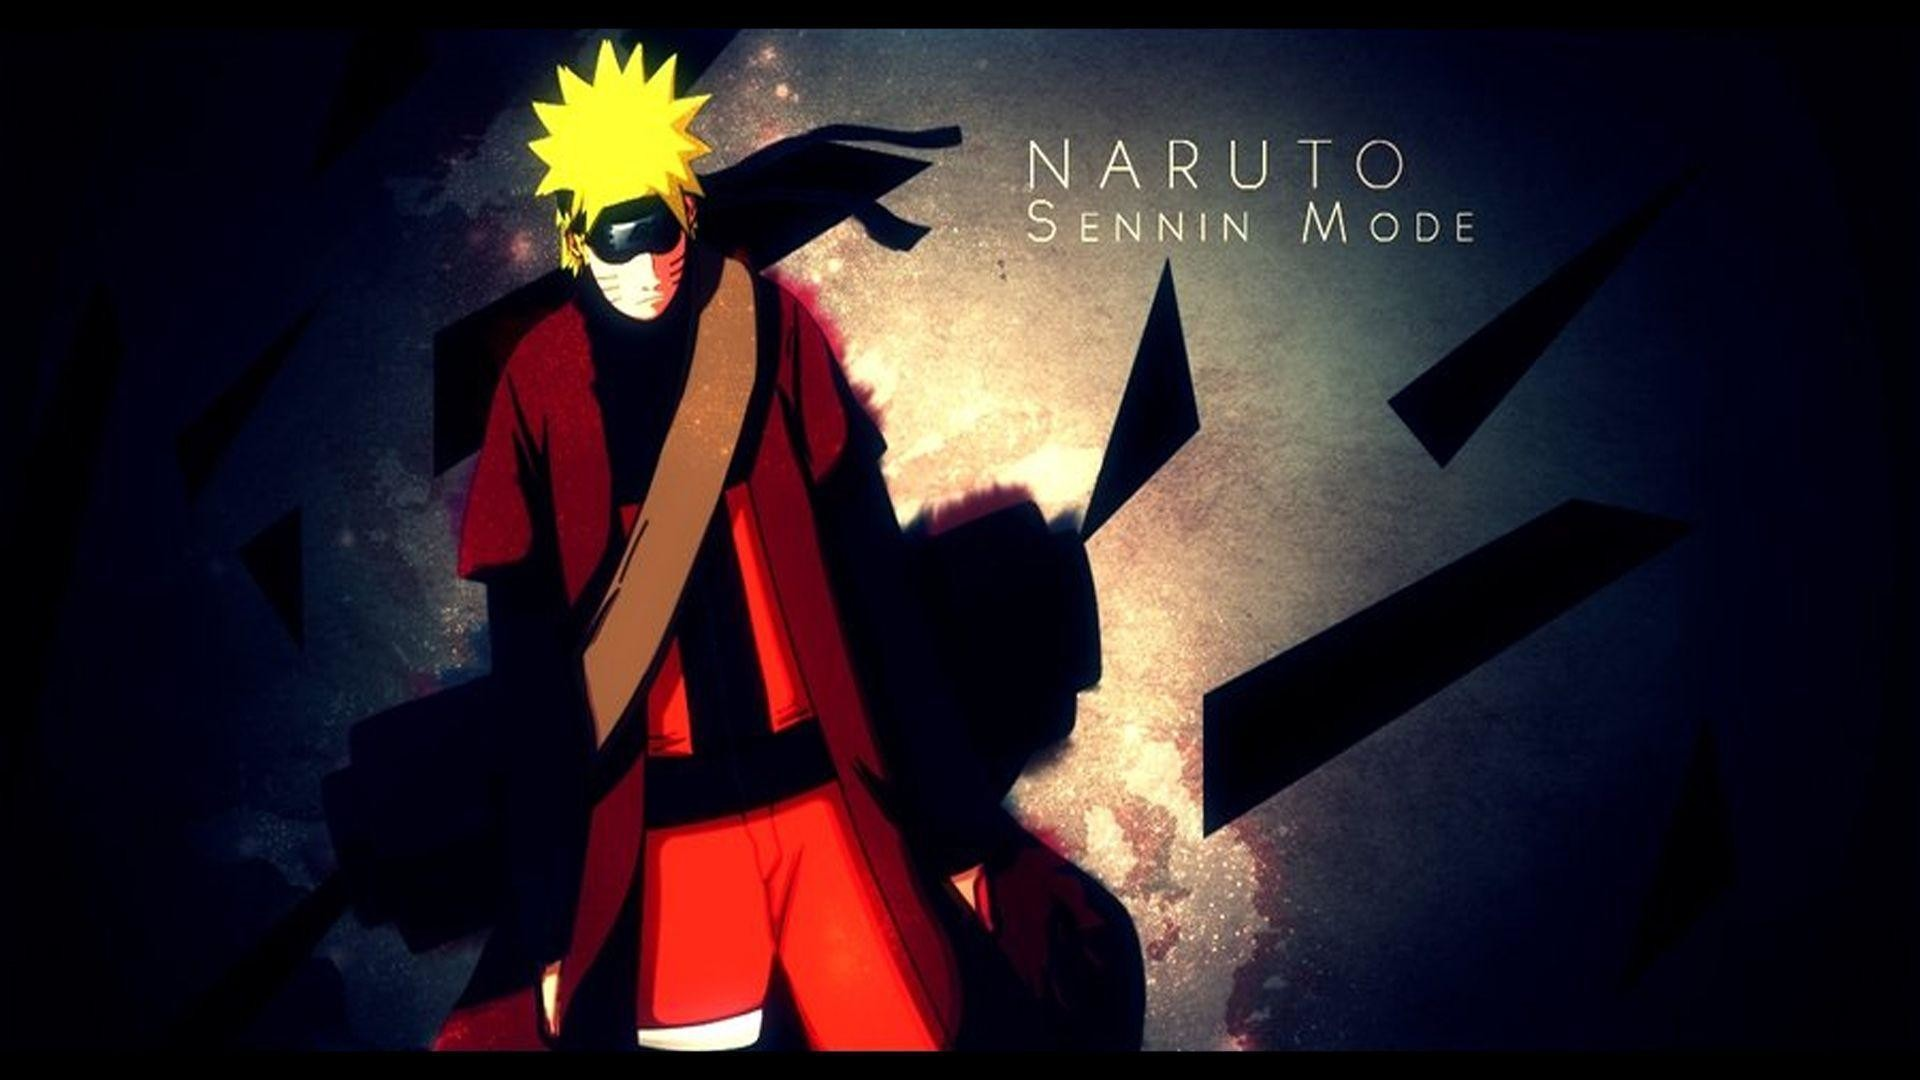 1920x1080 Naruto Sennin Mode Wallpaper by eaZyHD on DeviantArt